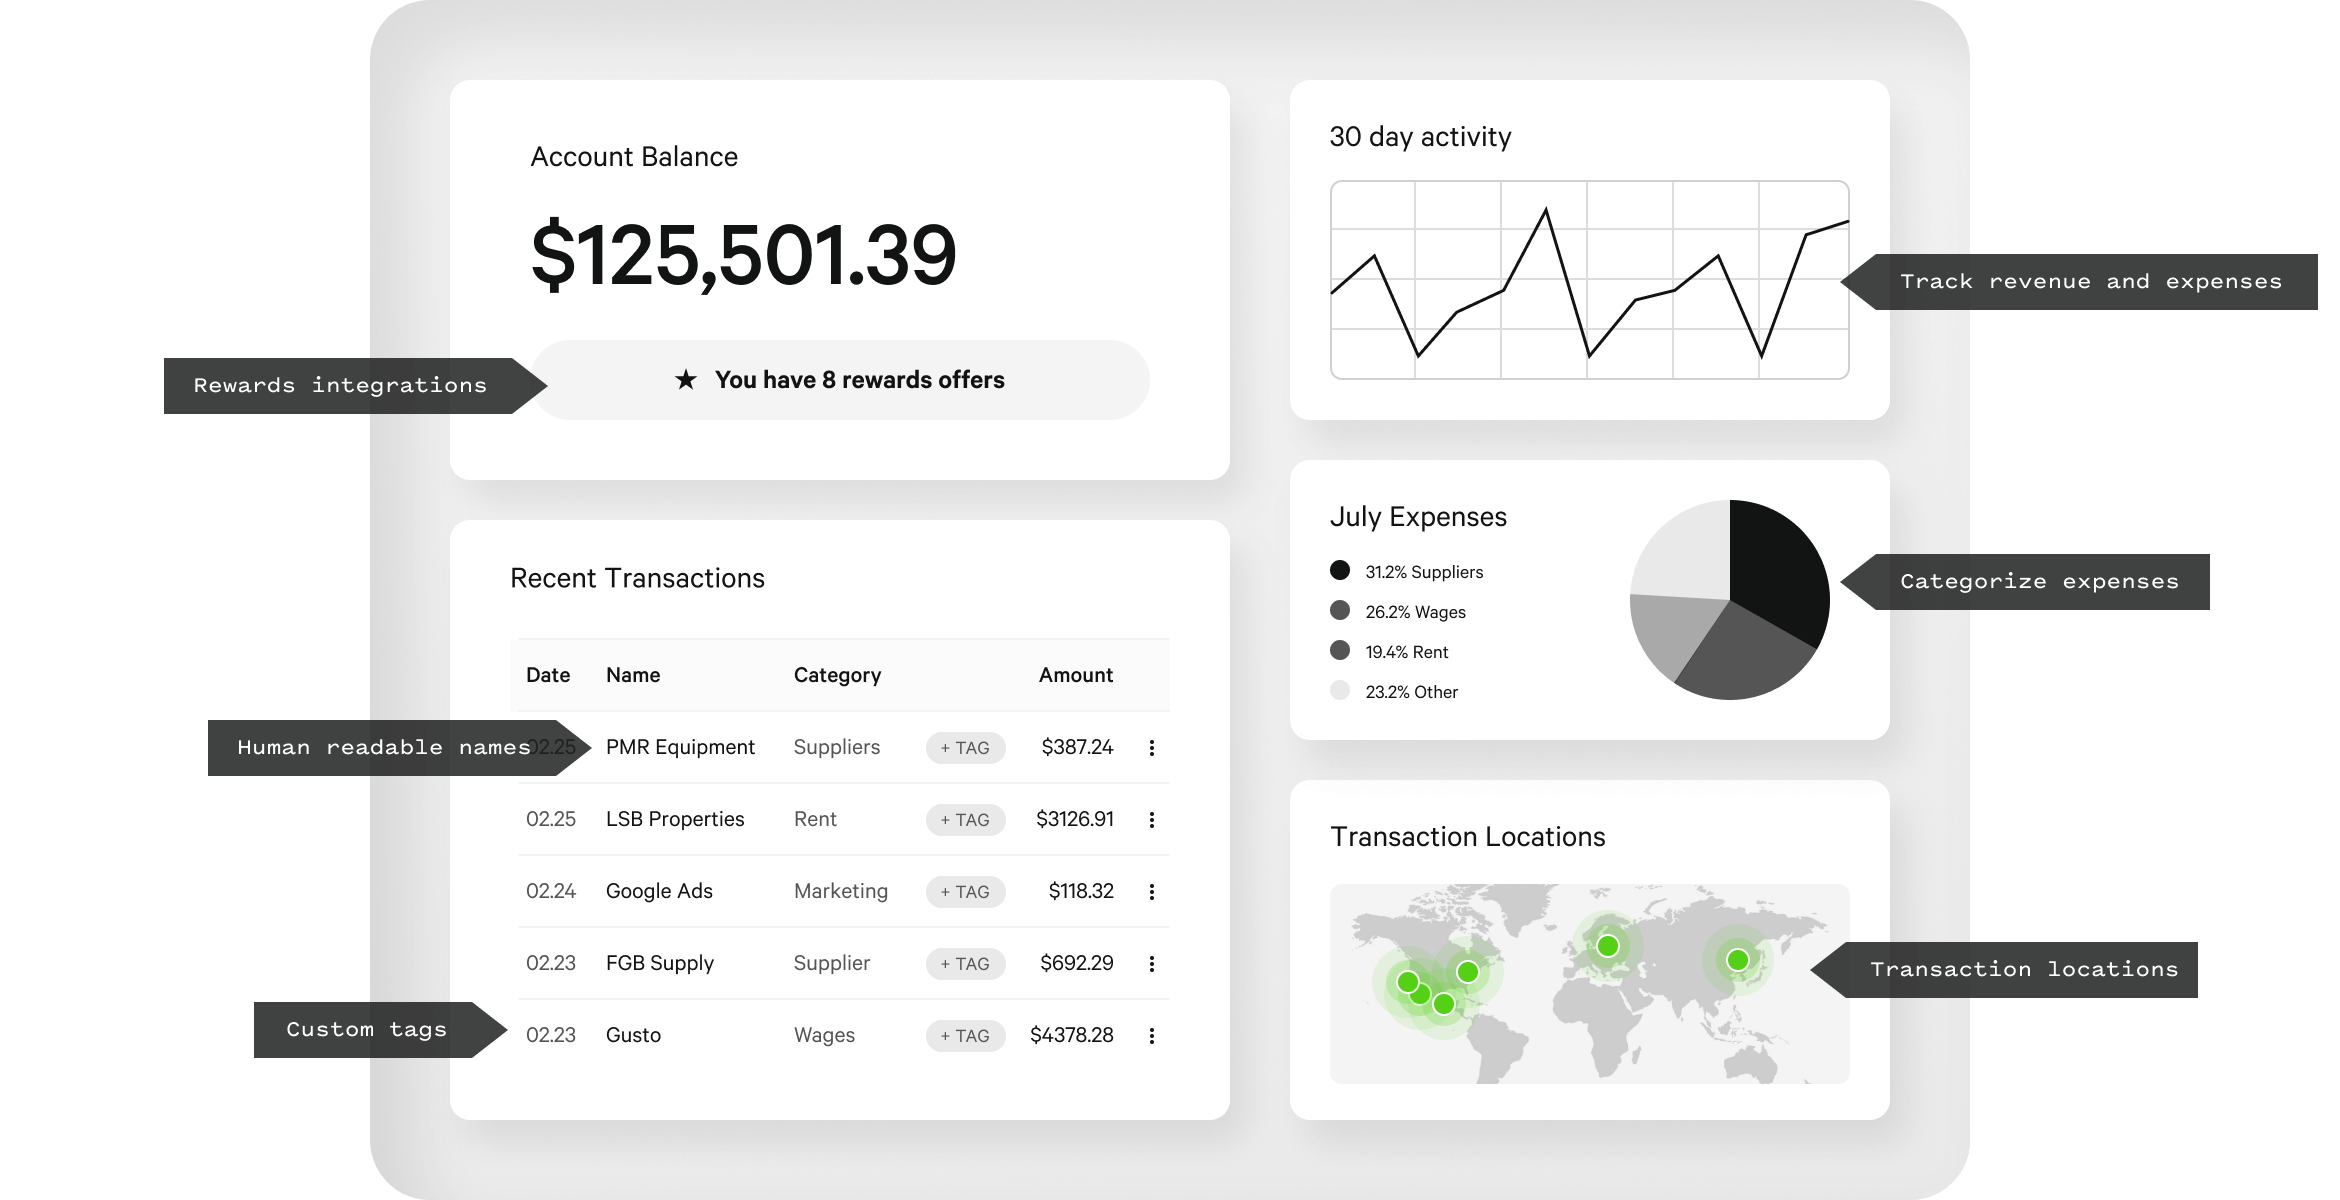 Digital interface showing small business account